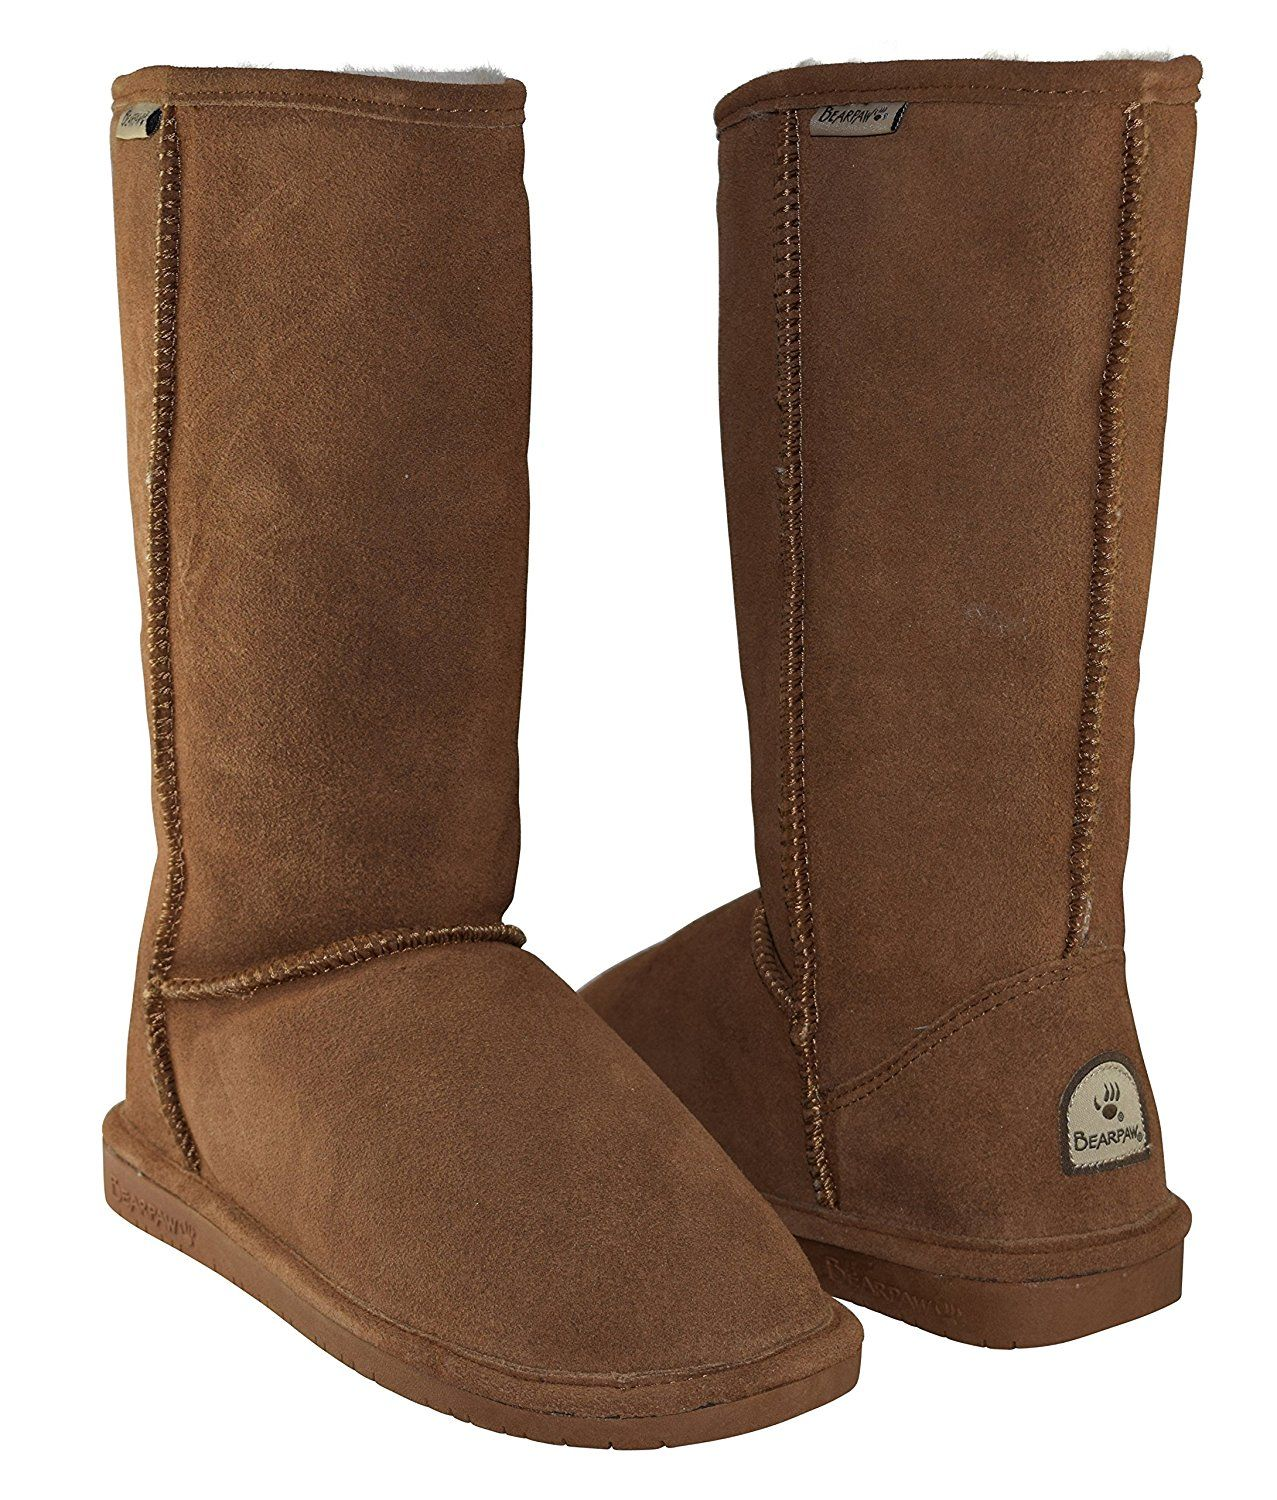 c57f3ec75030b BEARPAW Women's Emma Tall Shearling Boots 612-W (Hickory) -- This is an  Amazon Affiliate link. Click image for more details.